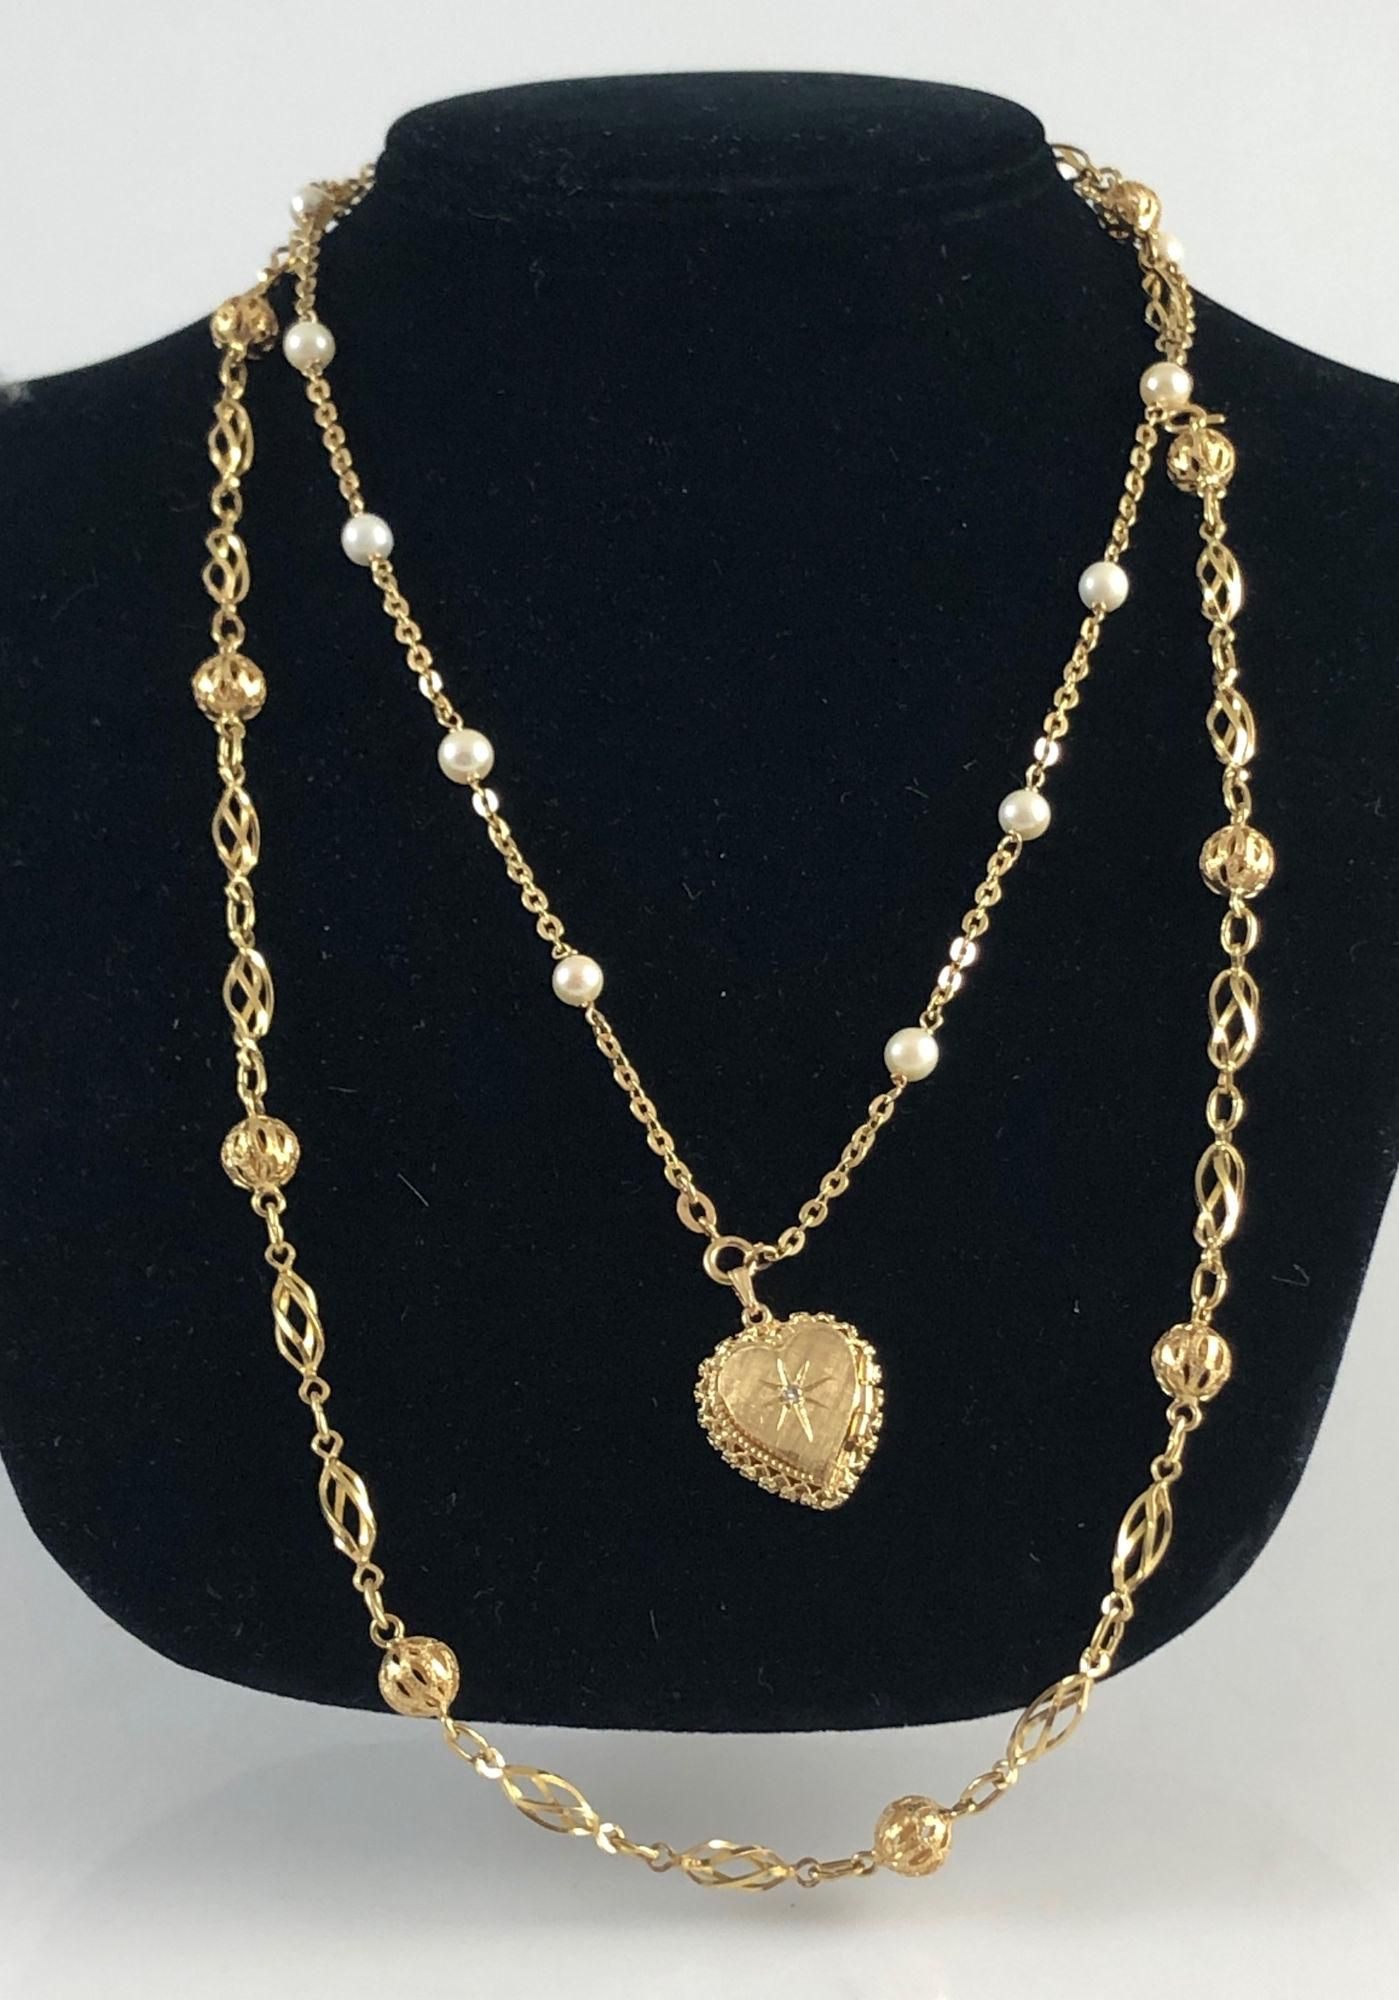 TWO GOLD NECKLACES